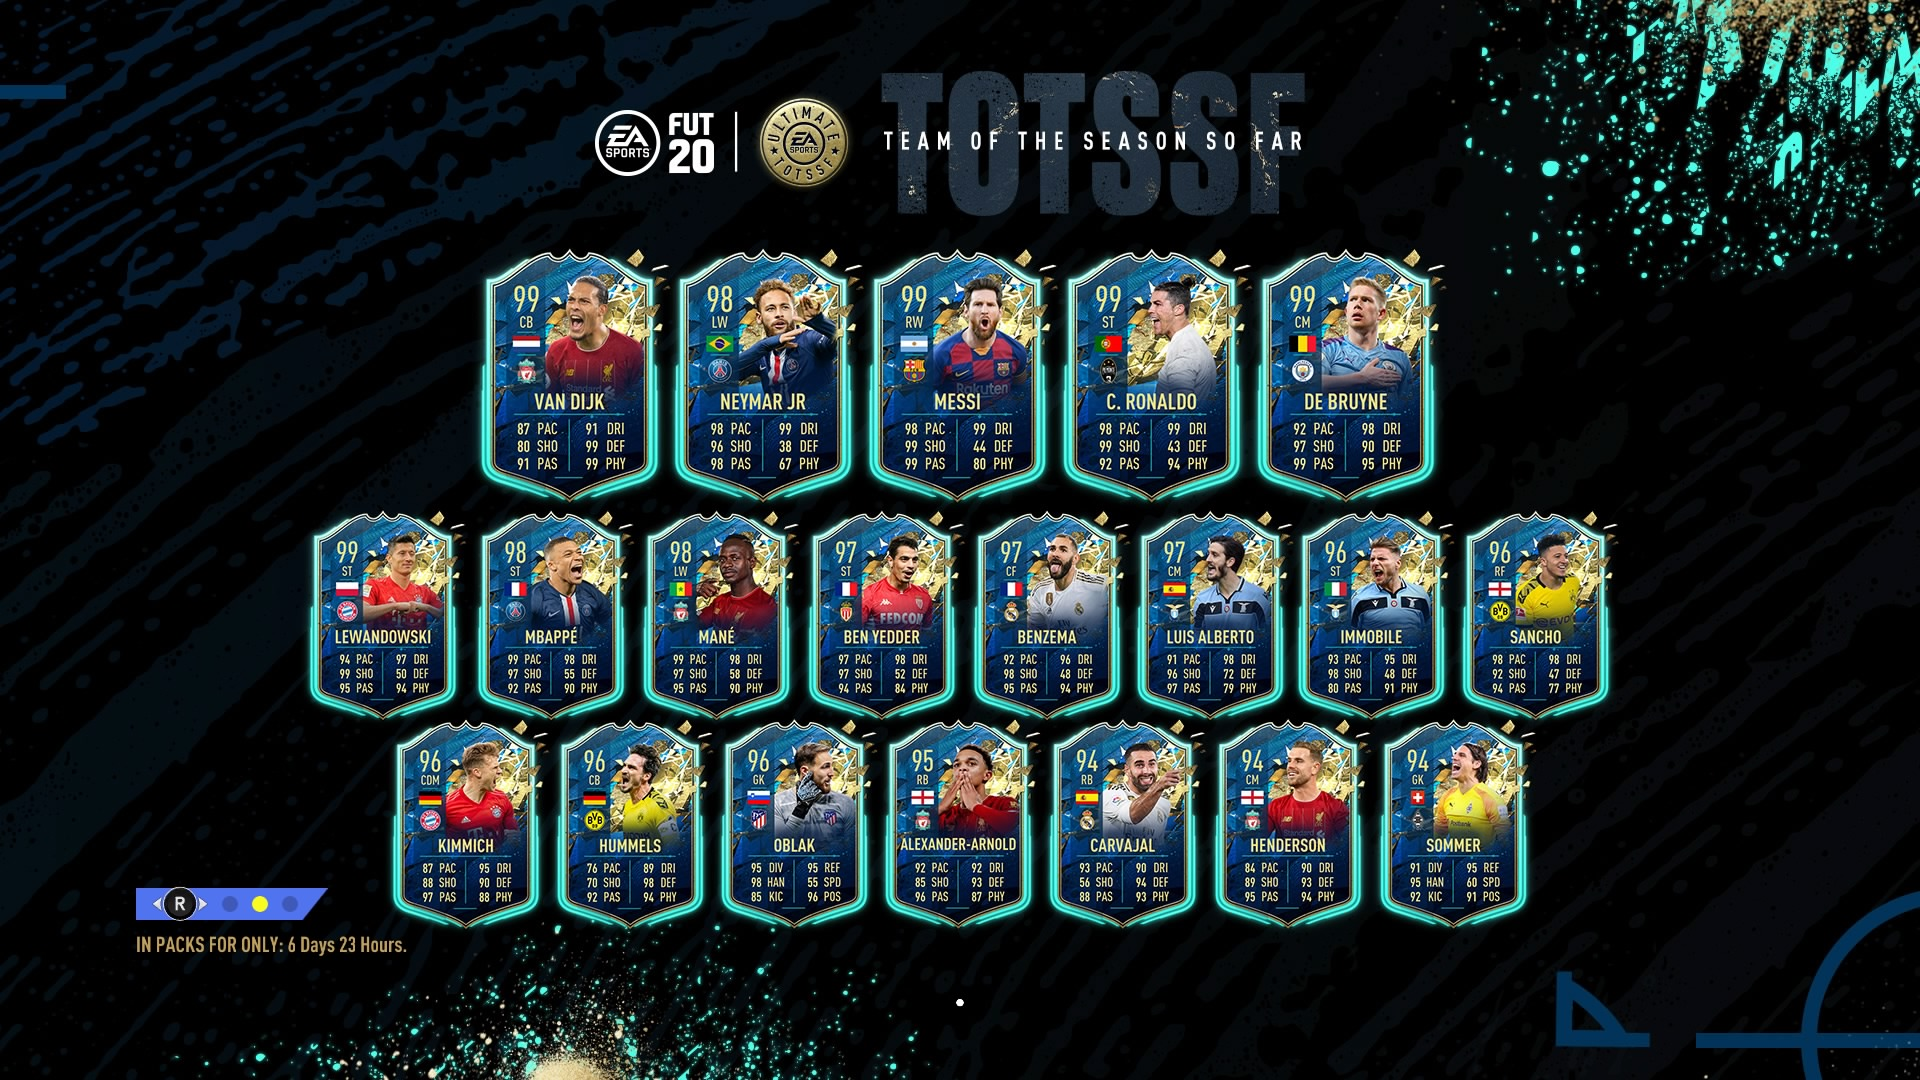 Fifa 20 Tots Guide Ligue 1 Team Brings 98 Rated Neymar And Mbappe Gamesradar